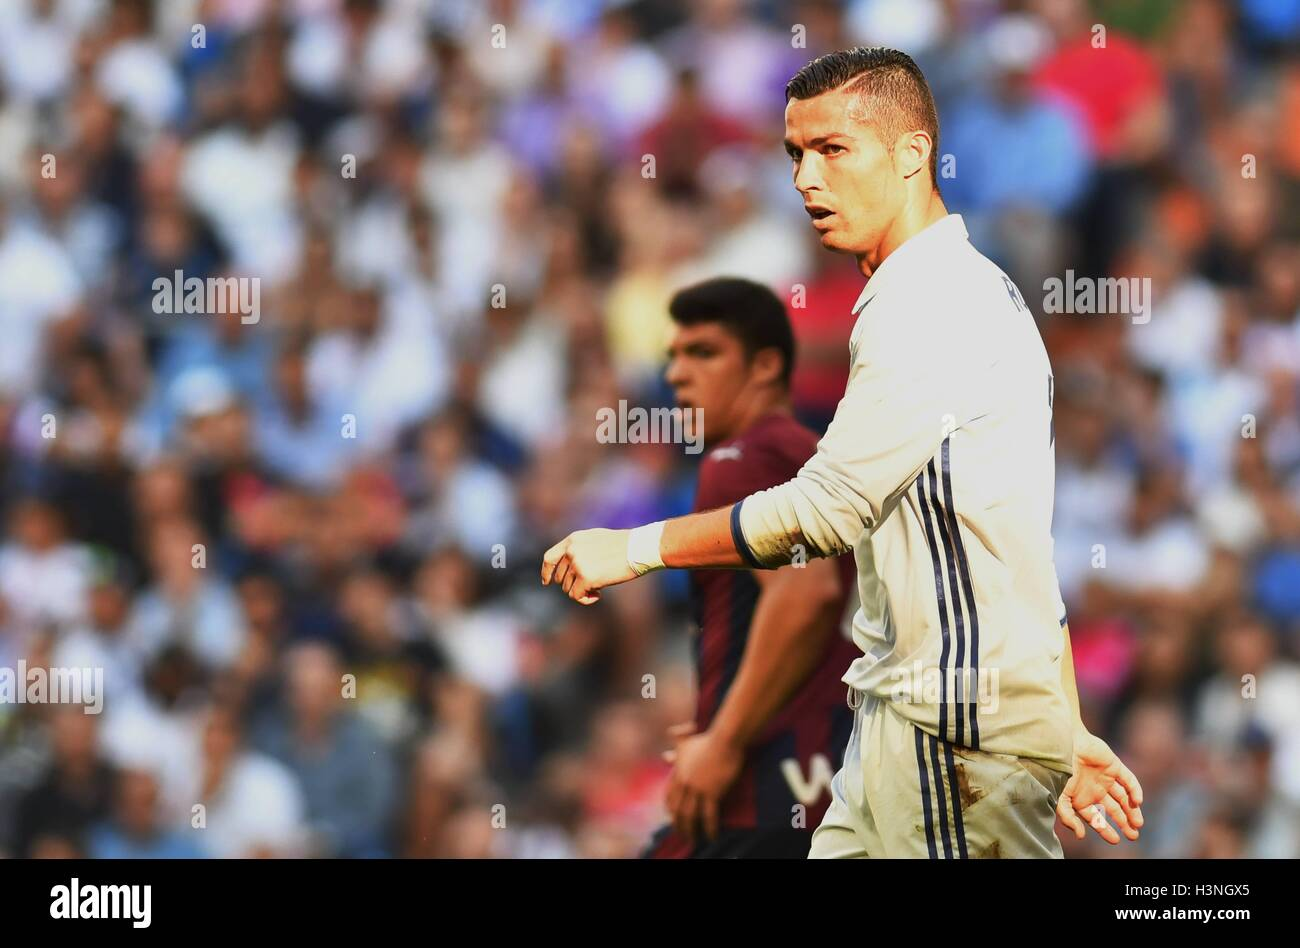 Cristiano Ronaldo (Real Madrid) during the LA LIGA match between Real Madrid and SD Eibar played at Estadio Santiago - Stock Image